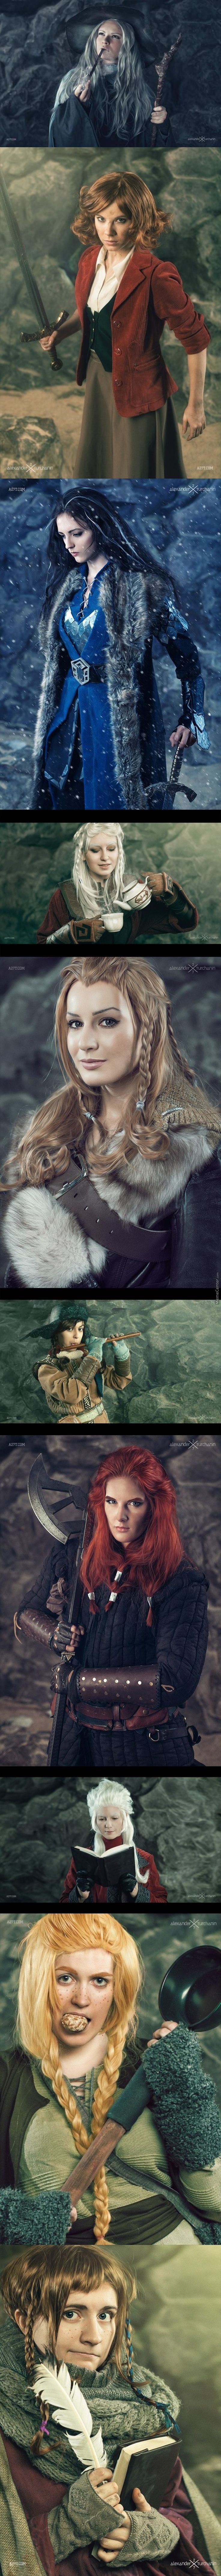 Genderbent Hobbit Cosplays - this is awesome! So wonderfully done